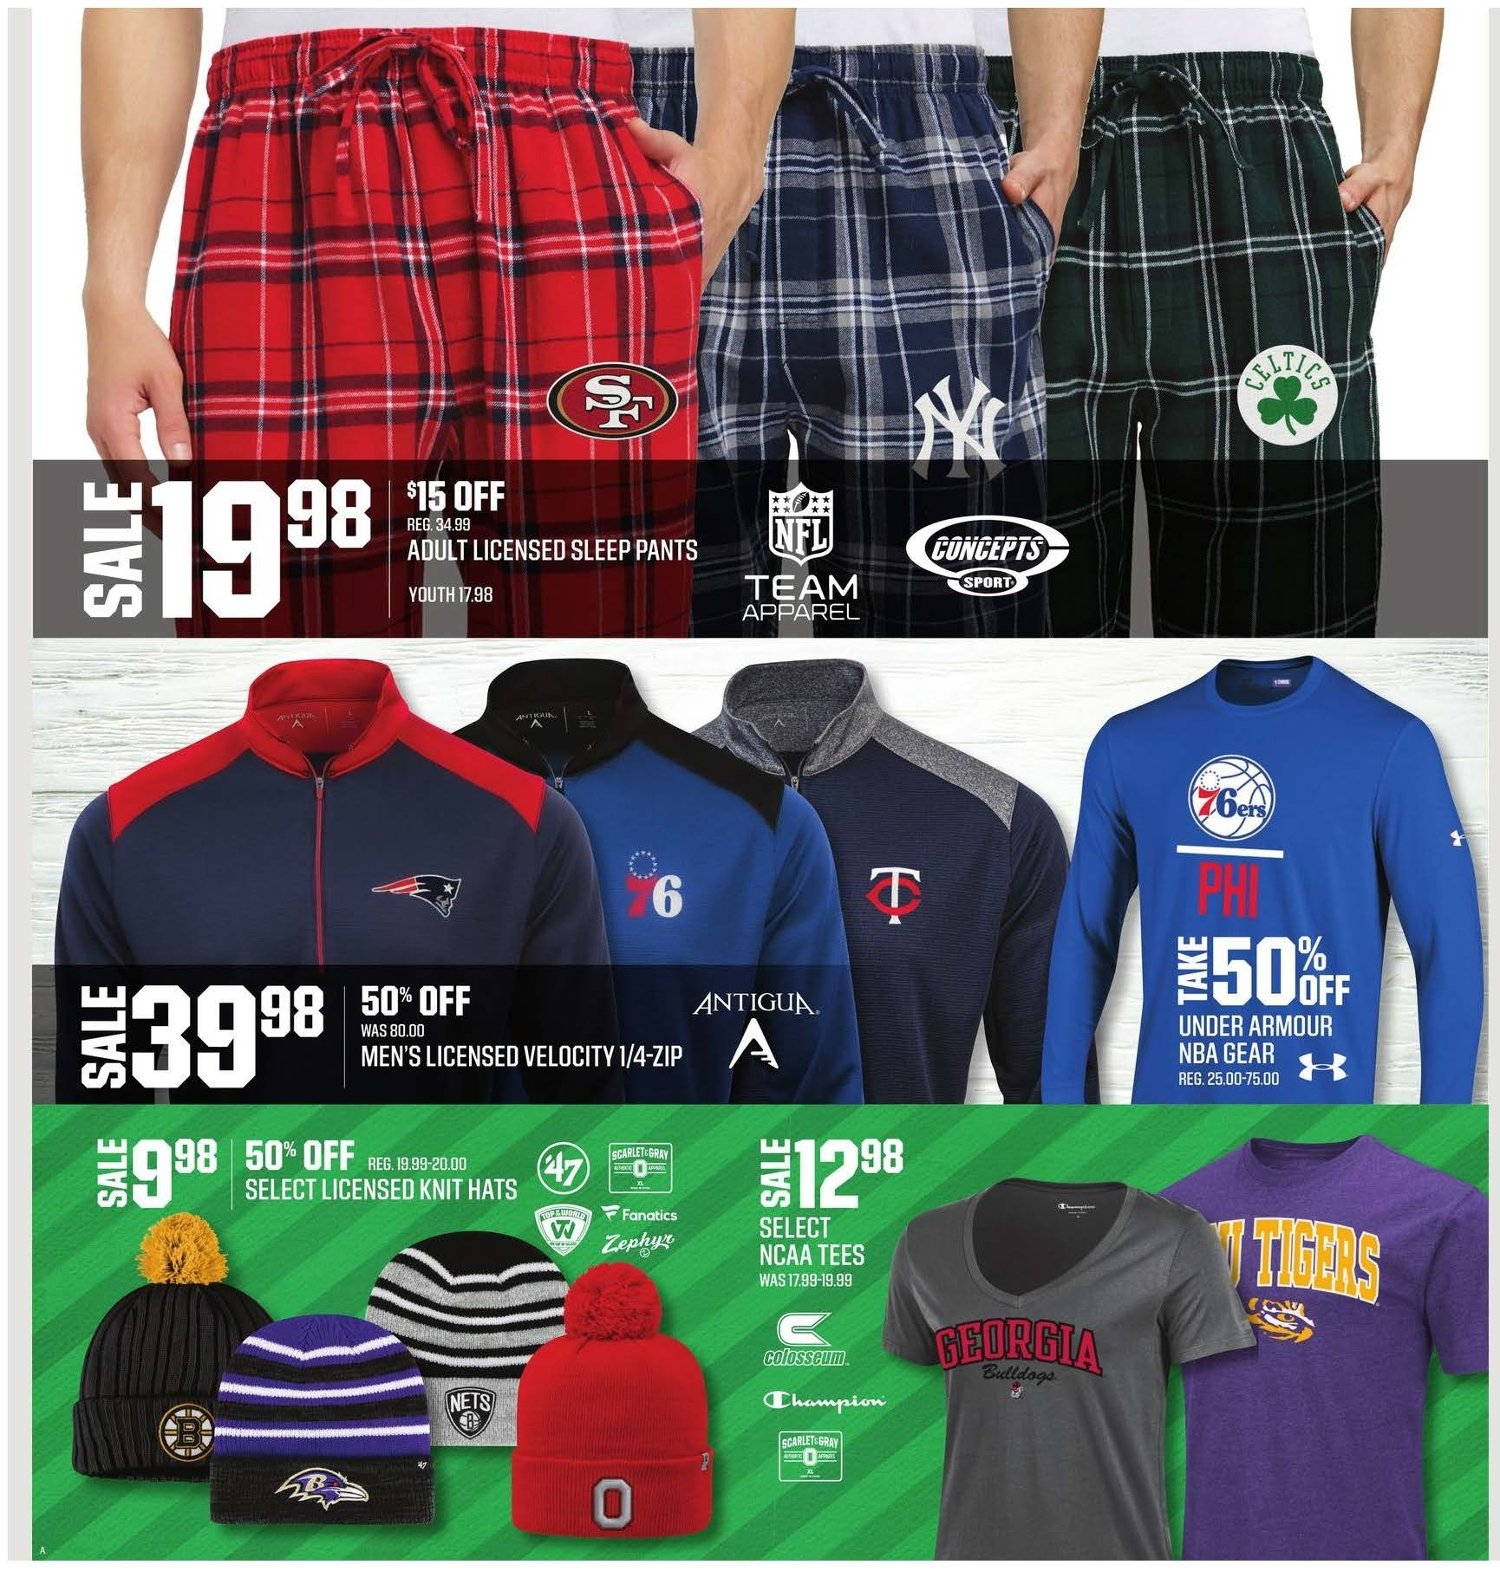 Dick's Sporting Goods Cyber Monday 2019 Page 9